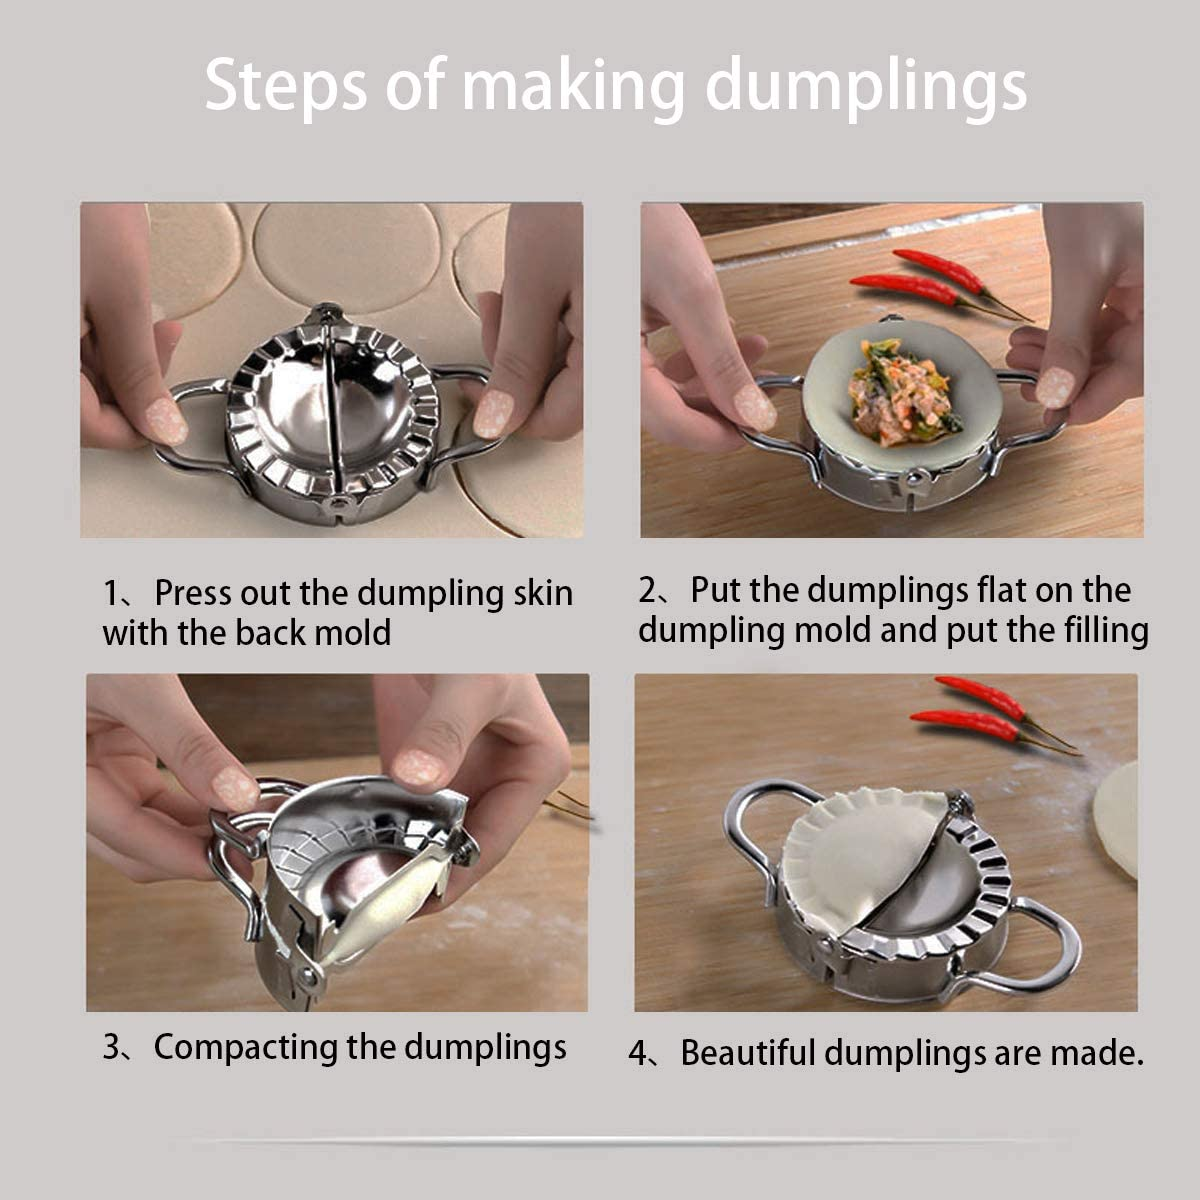 2 Pcs Stainless Steel Dumpling Maker,Multifunctional Kitchen Accessories Use as Dumpling Press,Pastry Dough Cutting Machine Set,Two Size 3.75 Inch and 3Inch